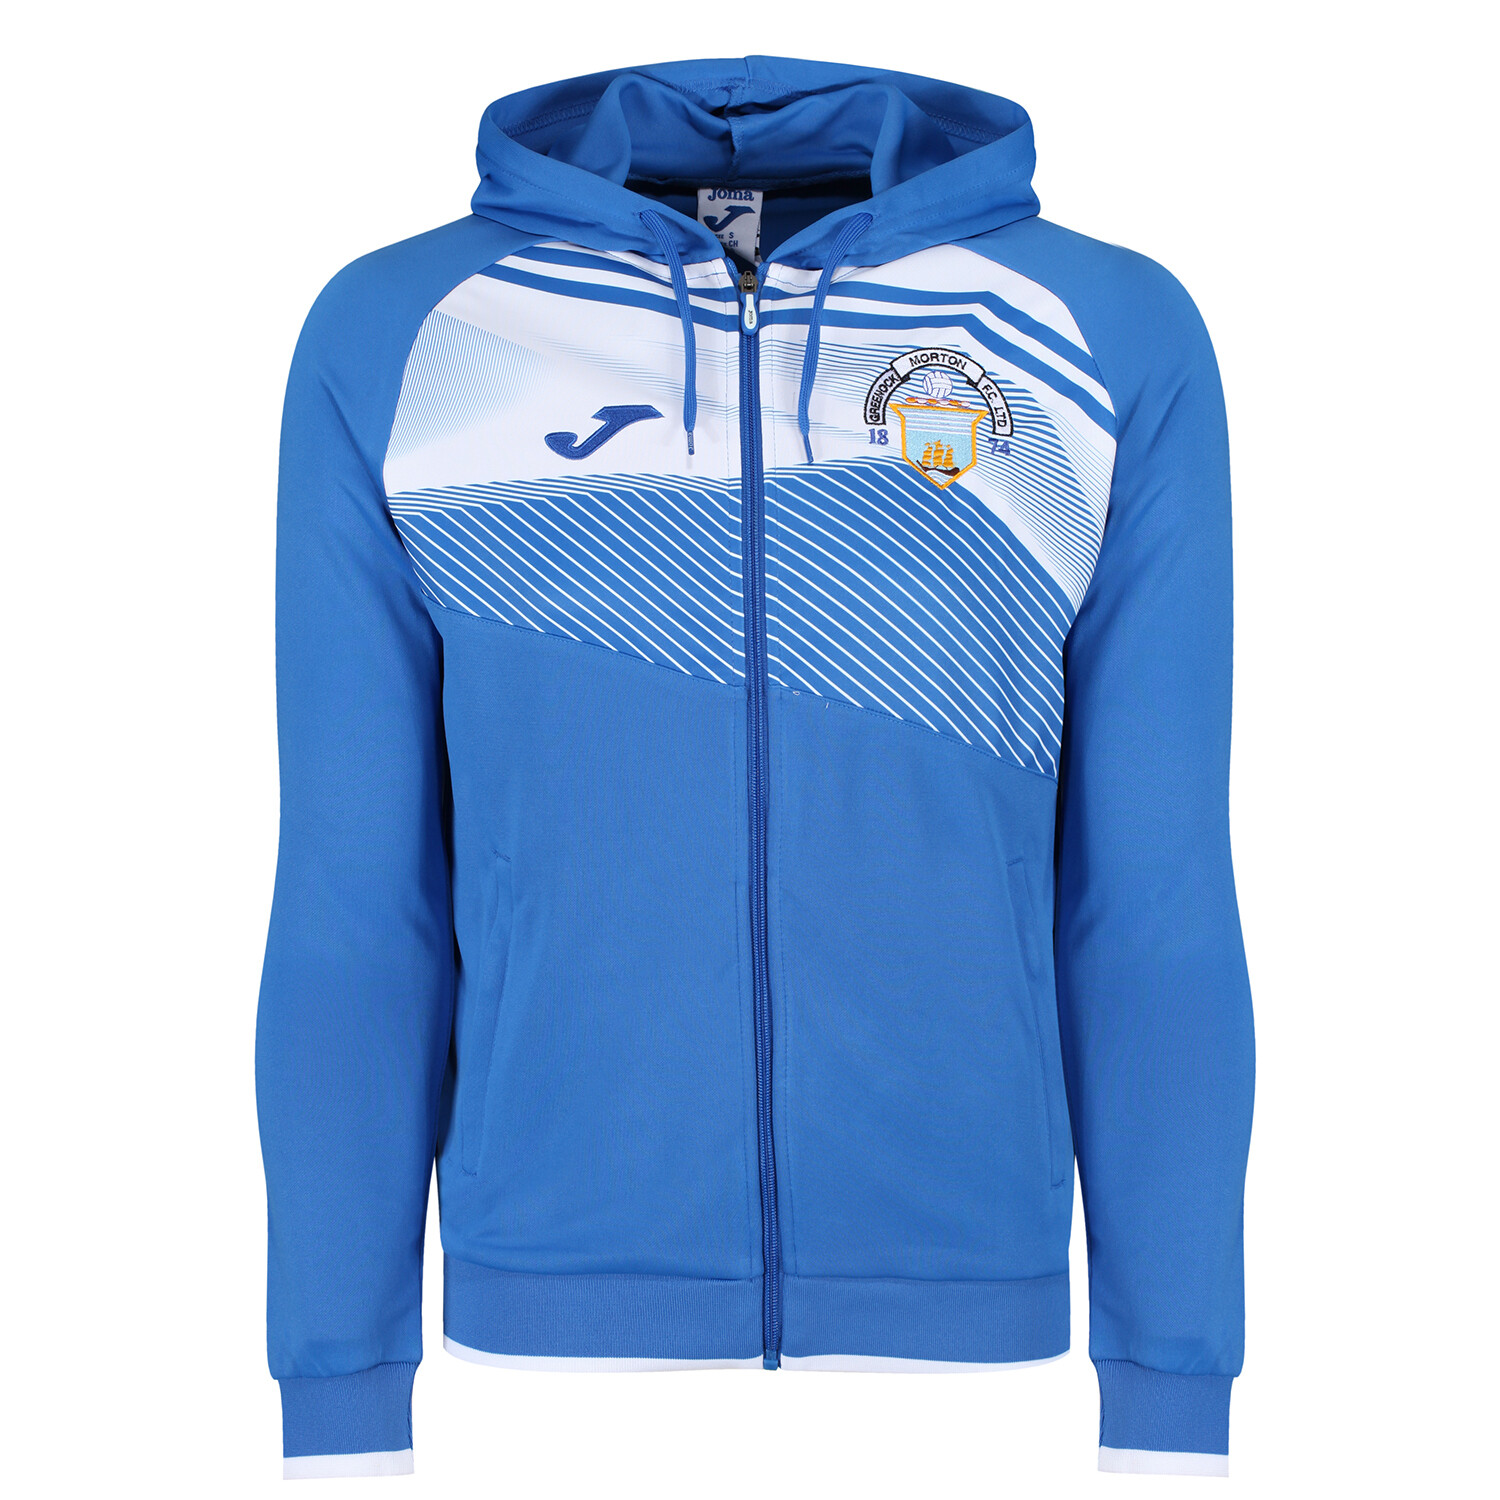 Morton 'Community Trust' Full Zip Hoody